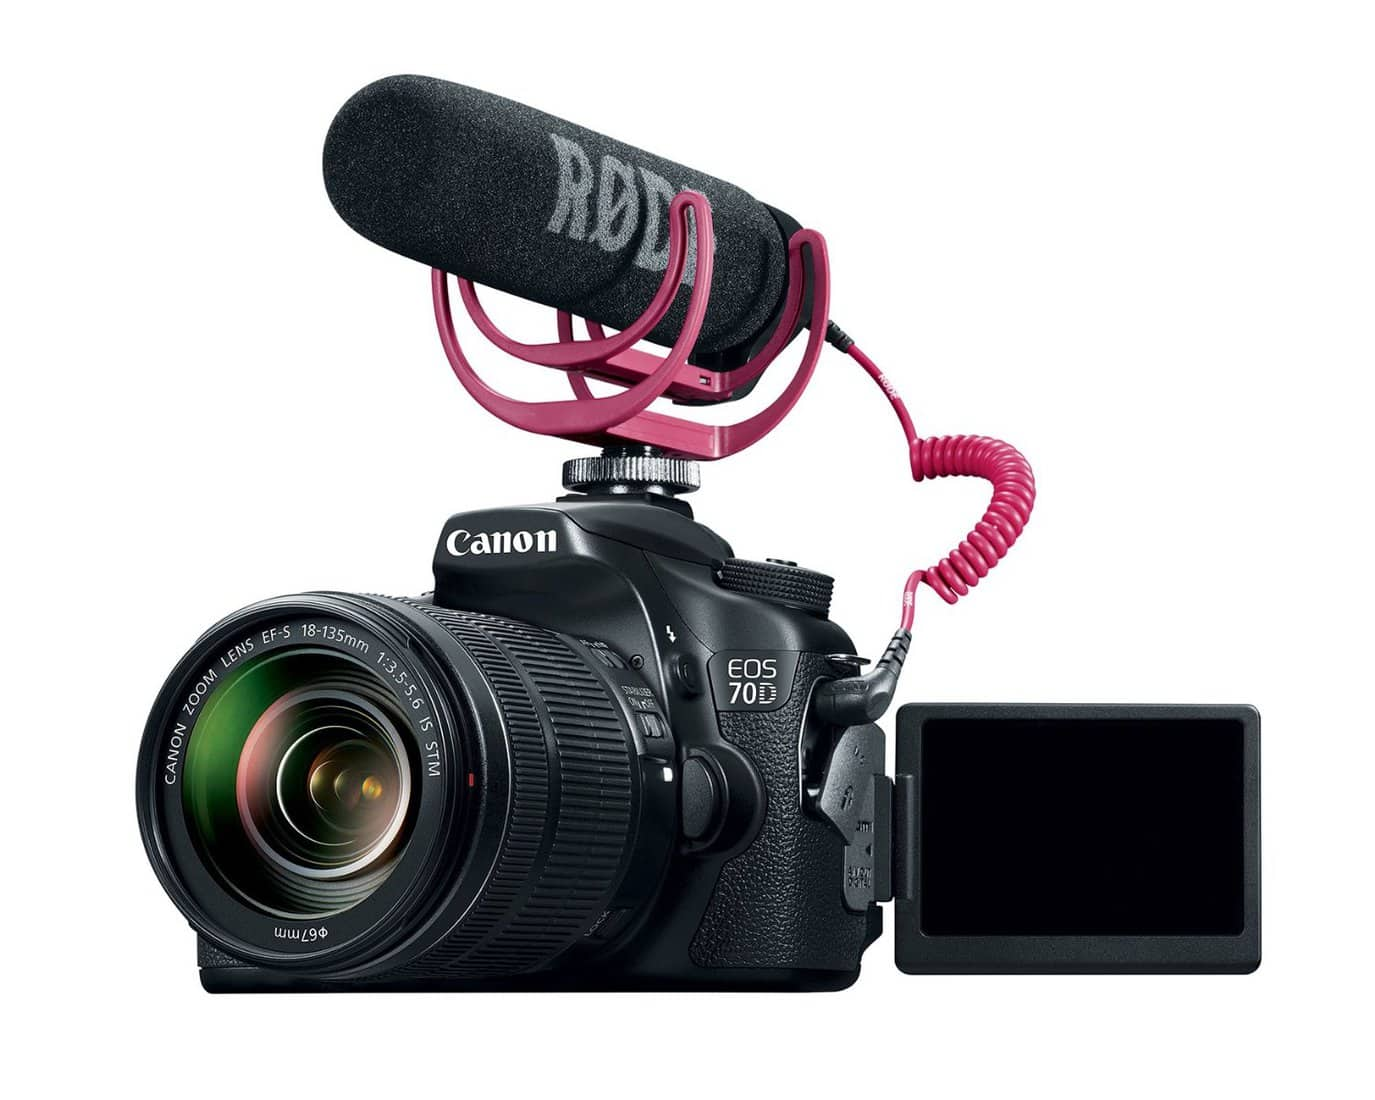 Canon Video Creator Kits Are they a good deal Stark Insider